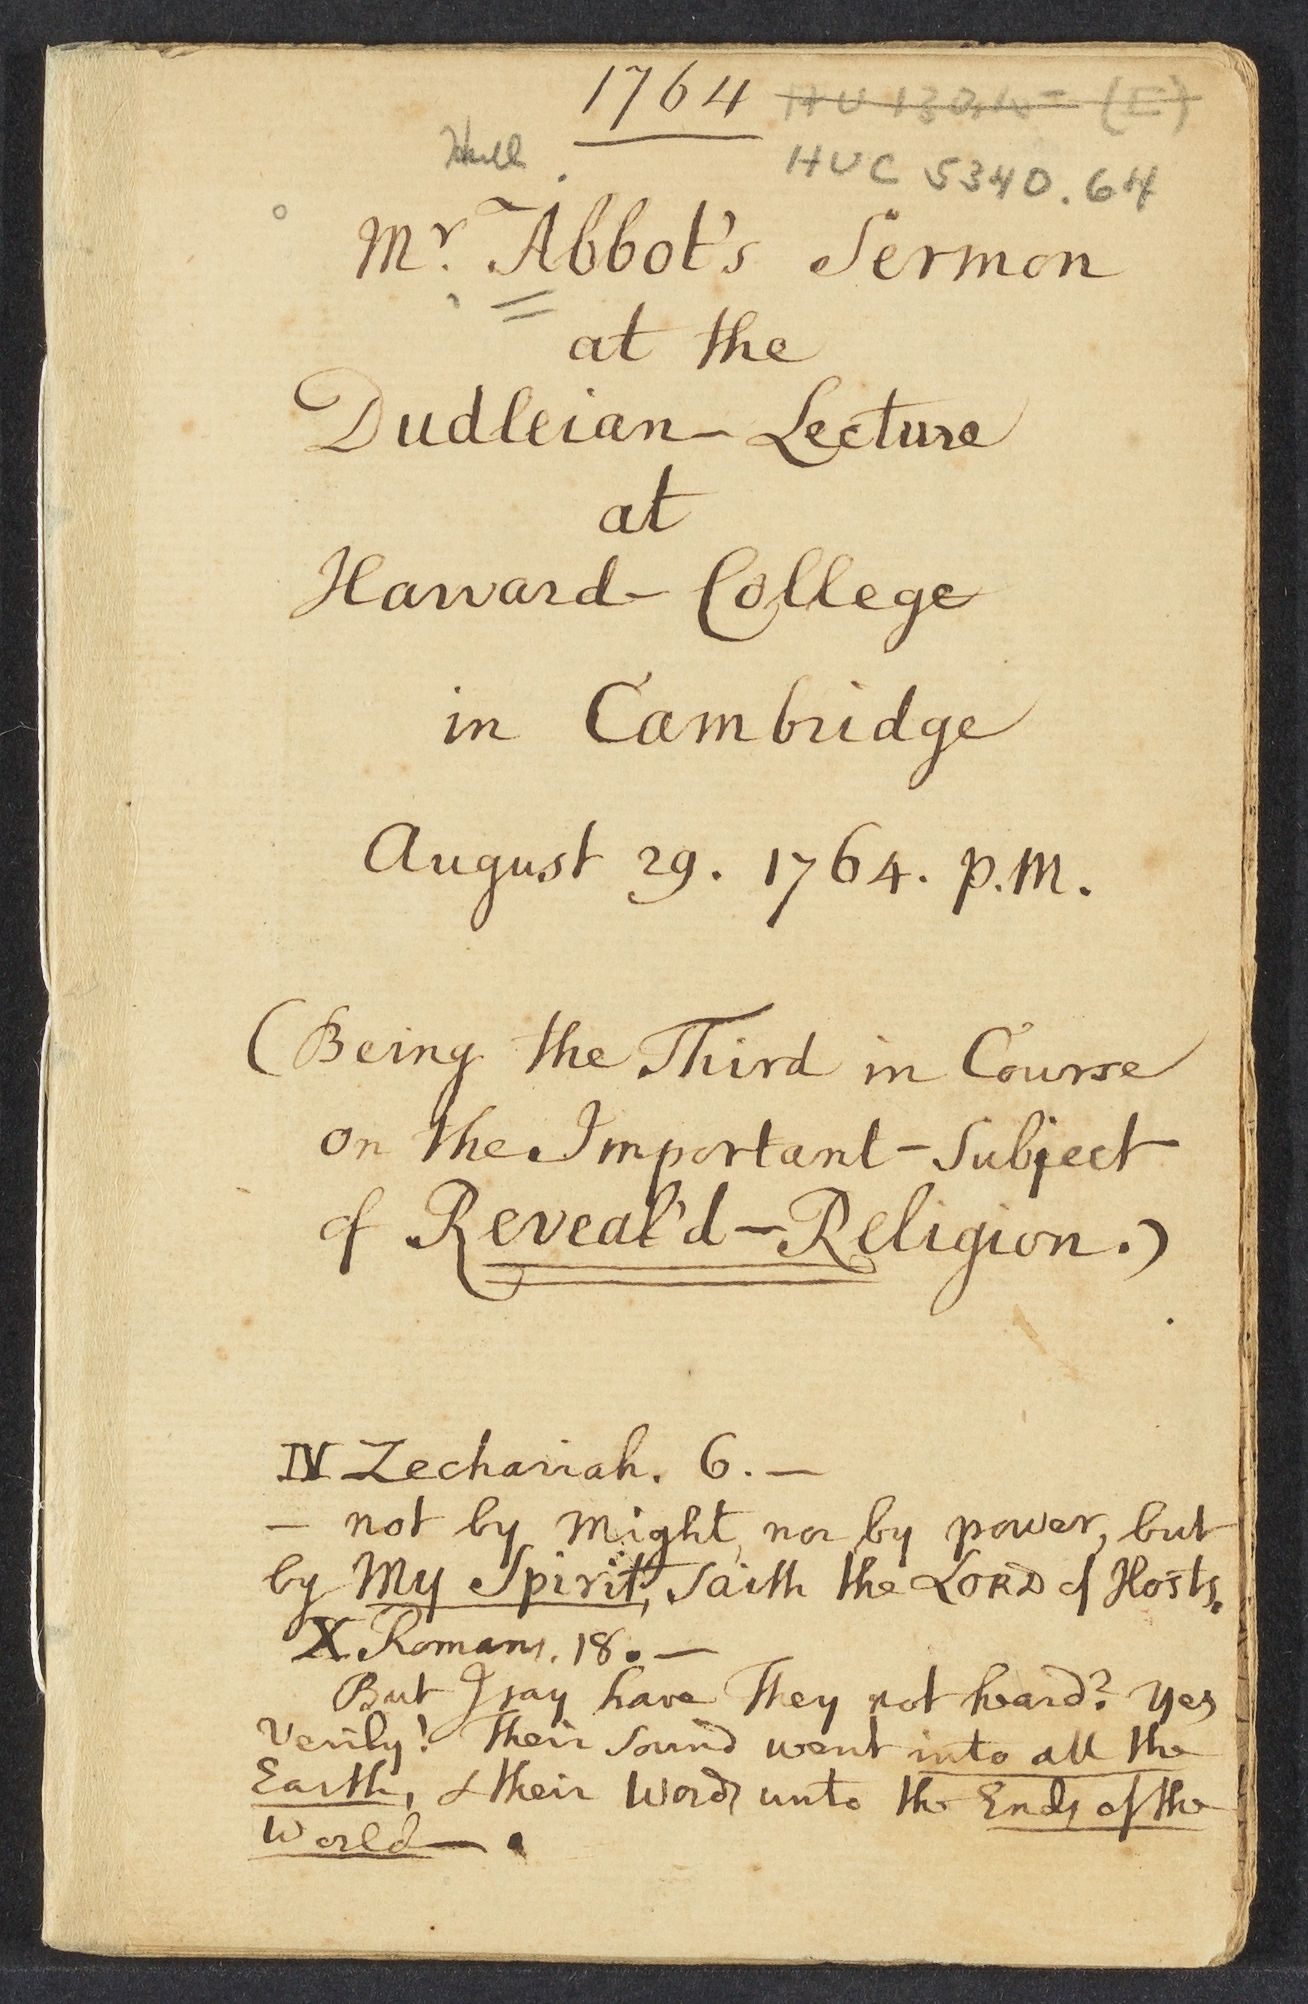 Mr. Abbot's sermon at the Dudleian lecture at Harvard College in Cambridge August 29, 1764 pm: being the third in course on the important subject of Reveal'd-religion